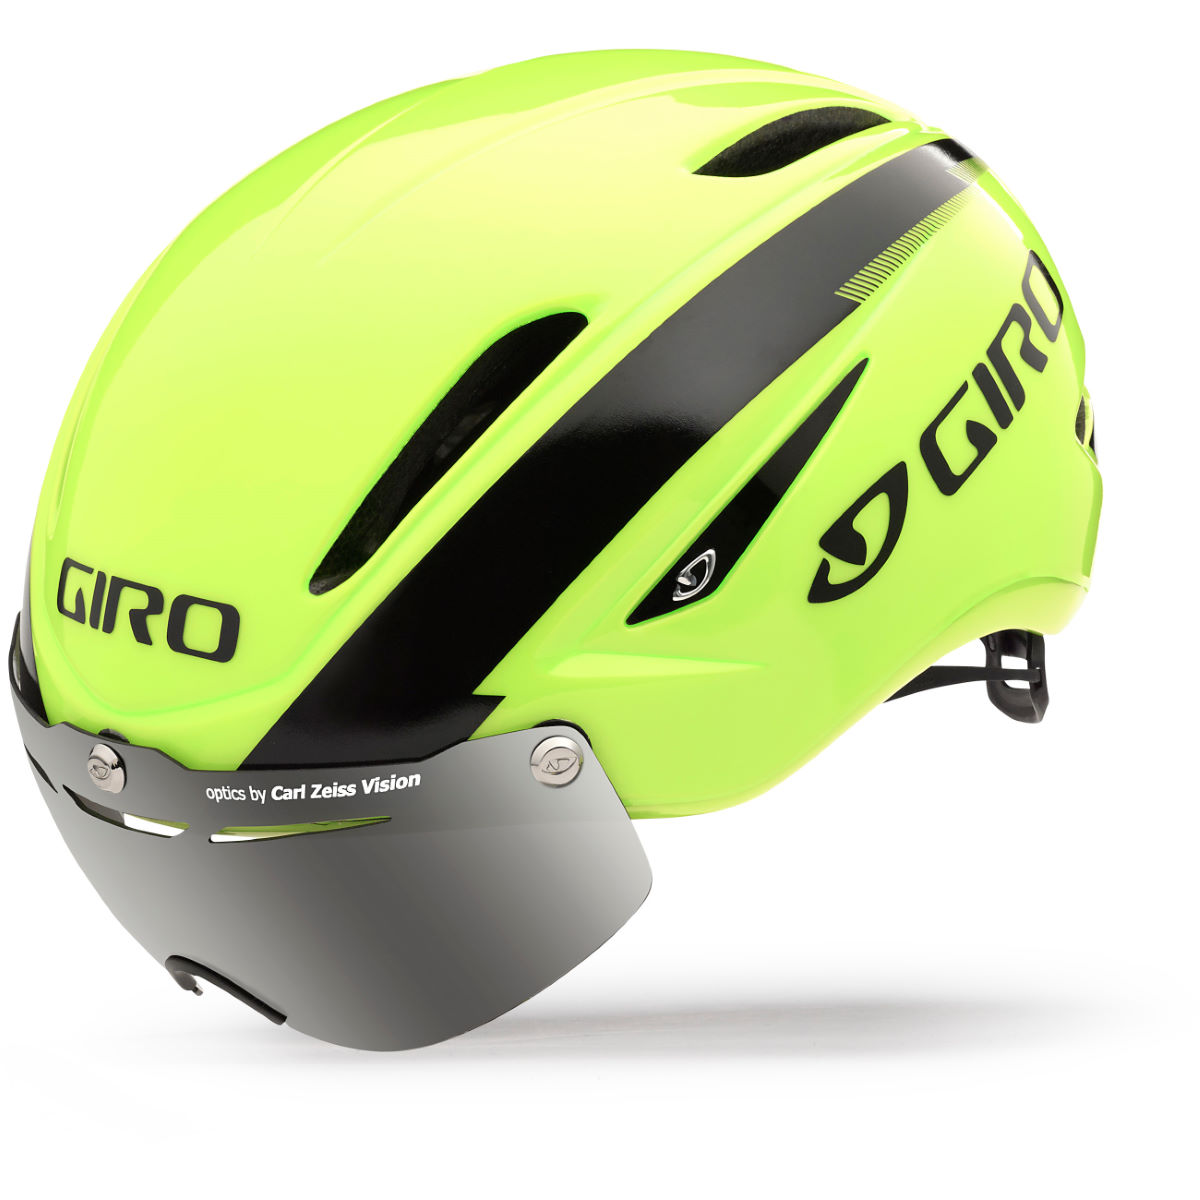 Casque de route Giro Air Attack Shield (2015) - Small 51-55cm Jaune/Noir Casques de route